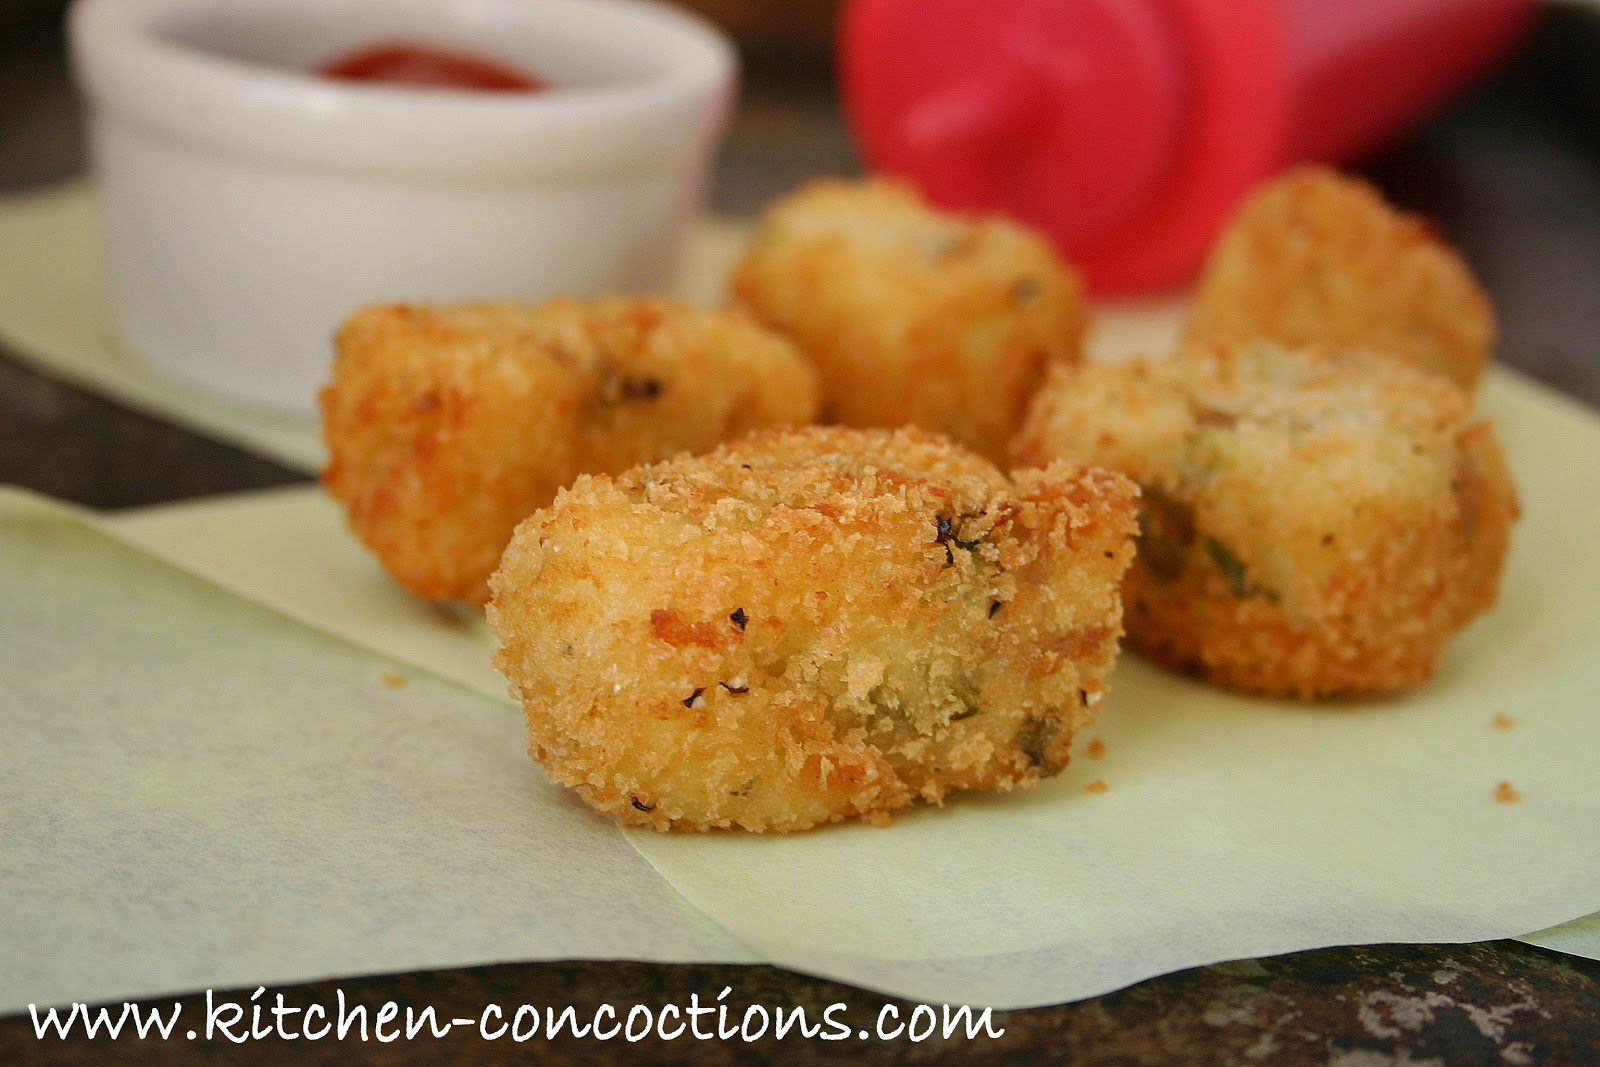 Kitchen Concoctions: Homemade Tater Tots – Two Ways